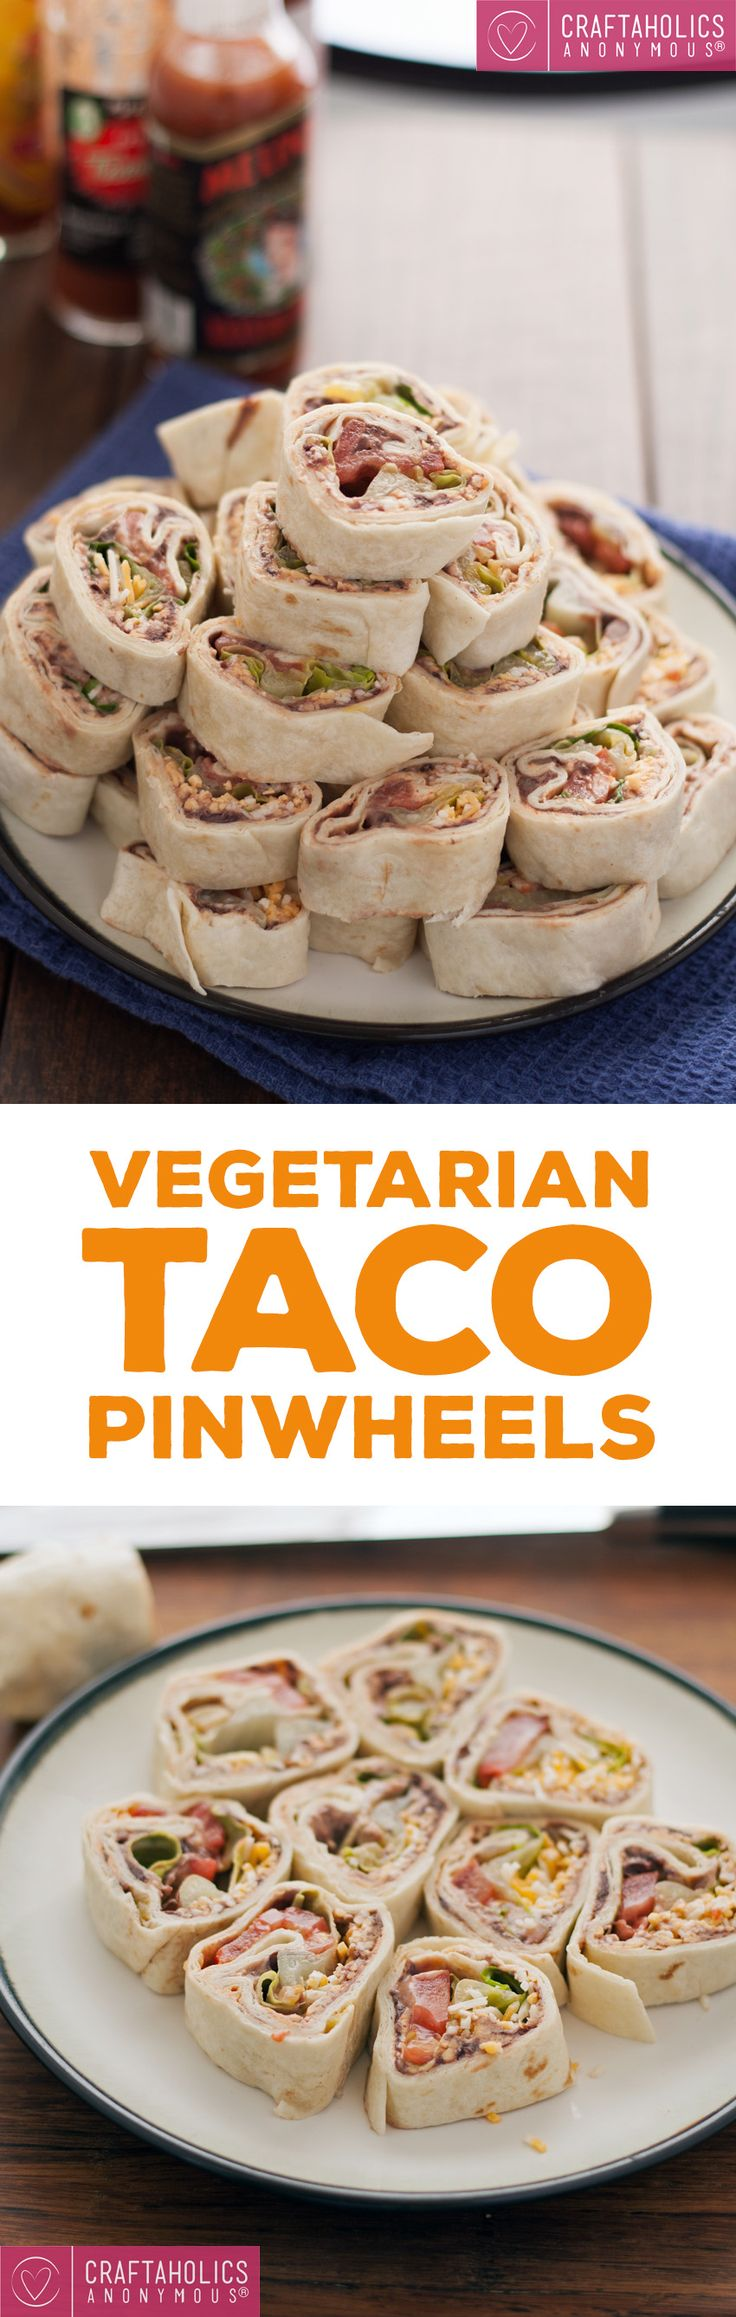 Perfect party food! Make these easy and delicious Vegetarian Taco Pinwheels!